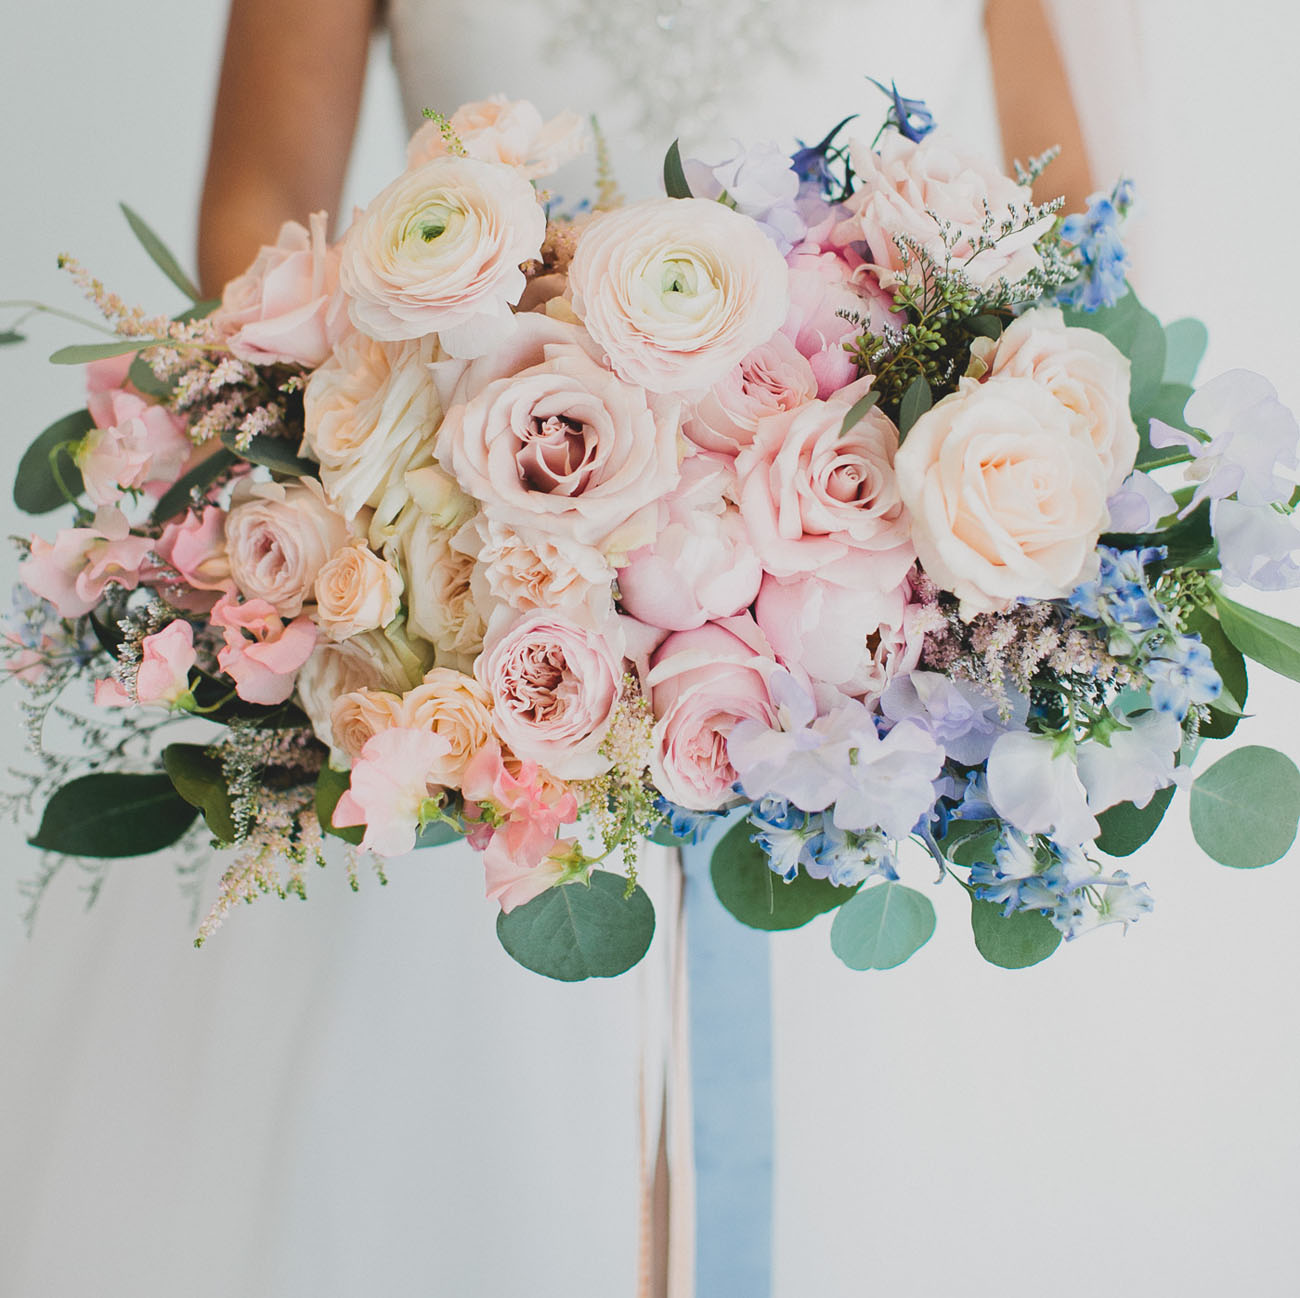 Rose Quartz and Serenity Wedding Inspiration - Featured on Green Wedding Shoes